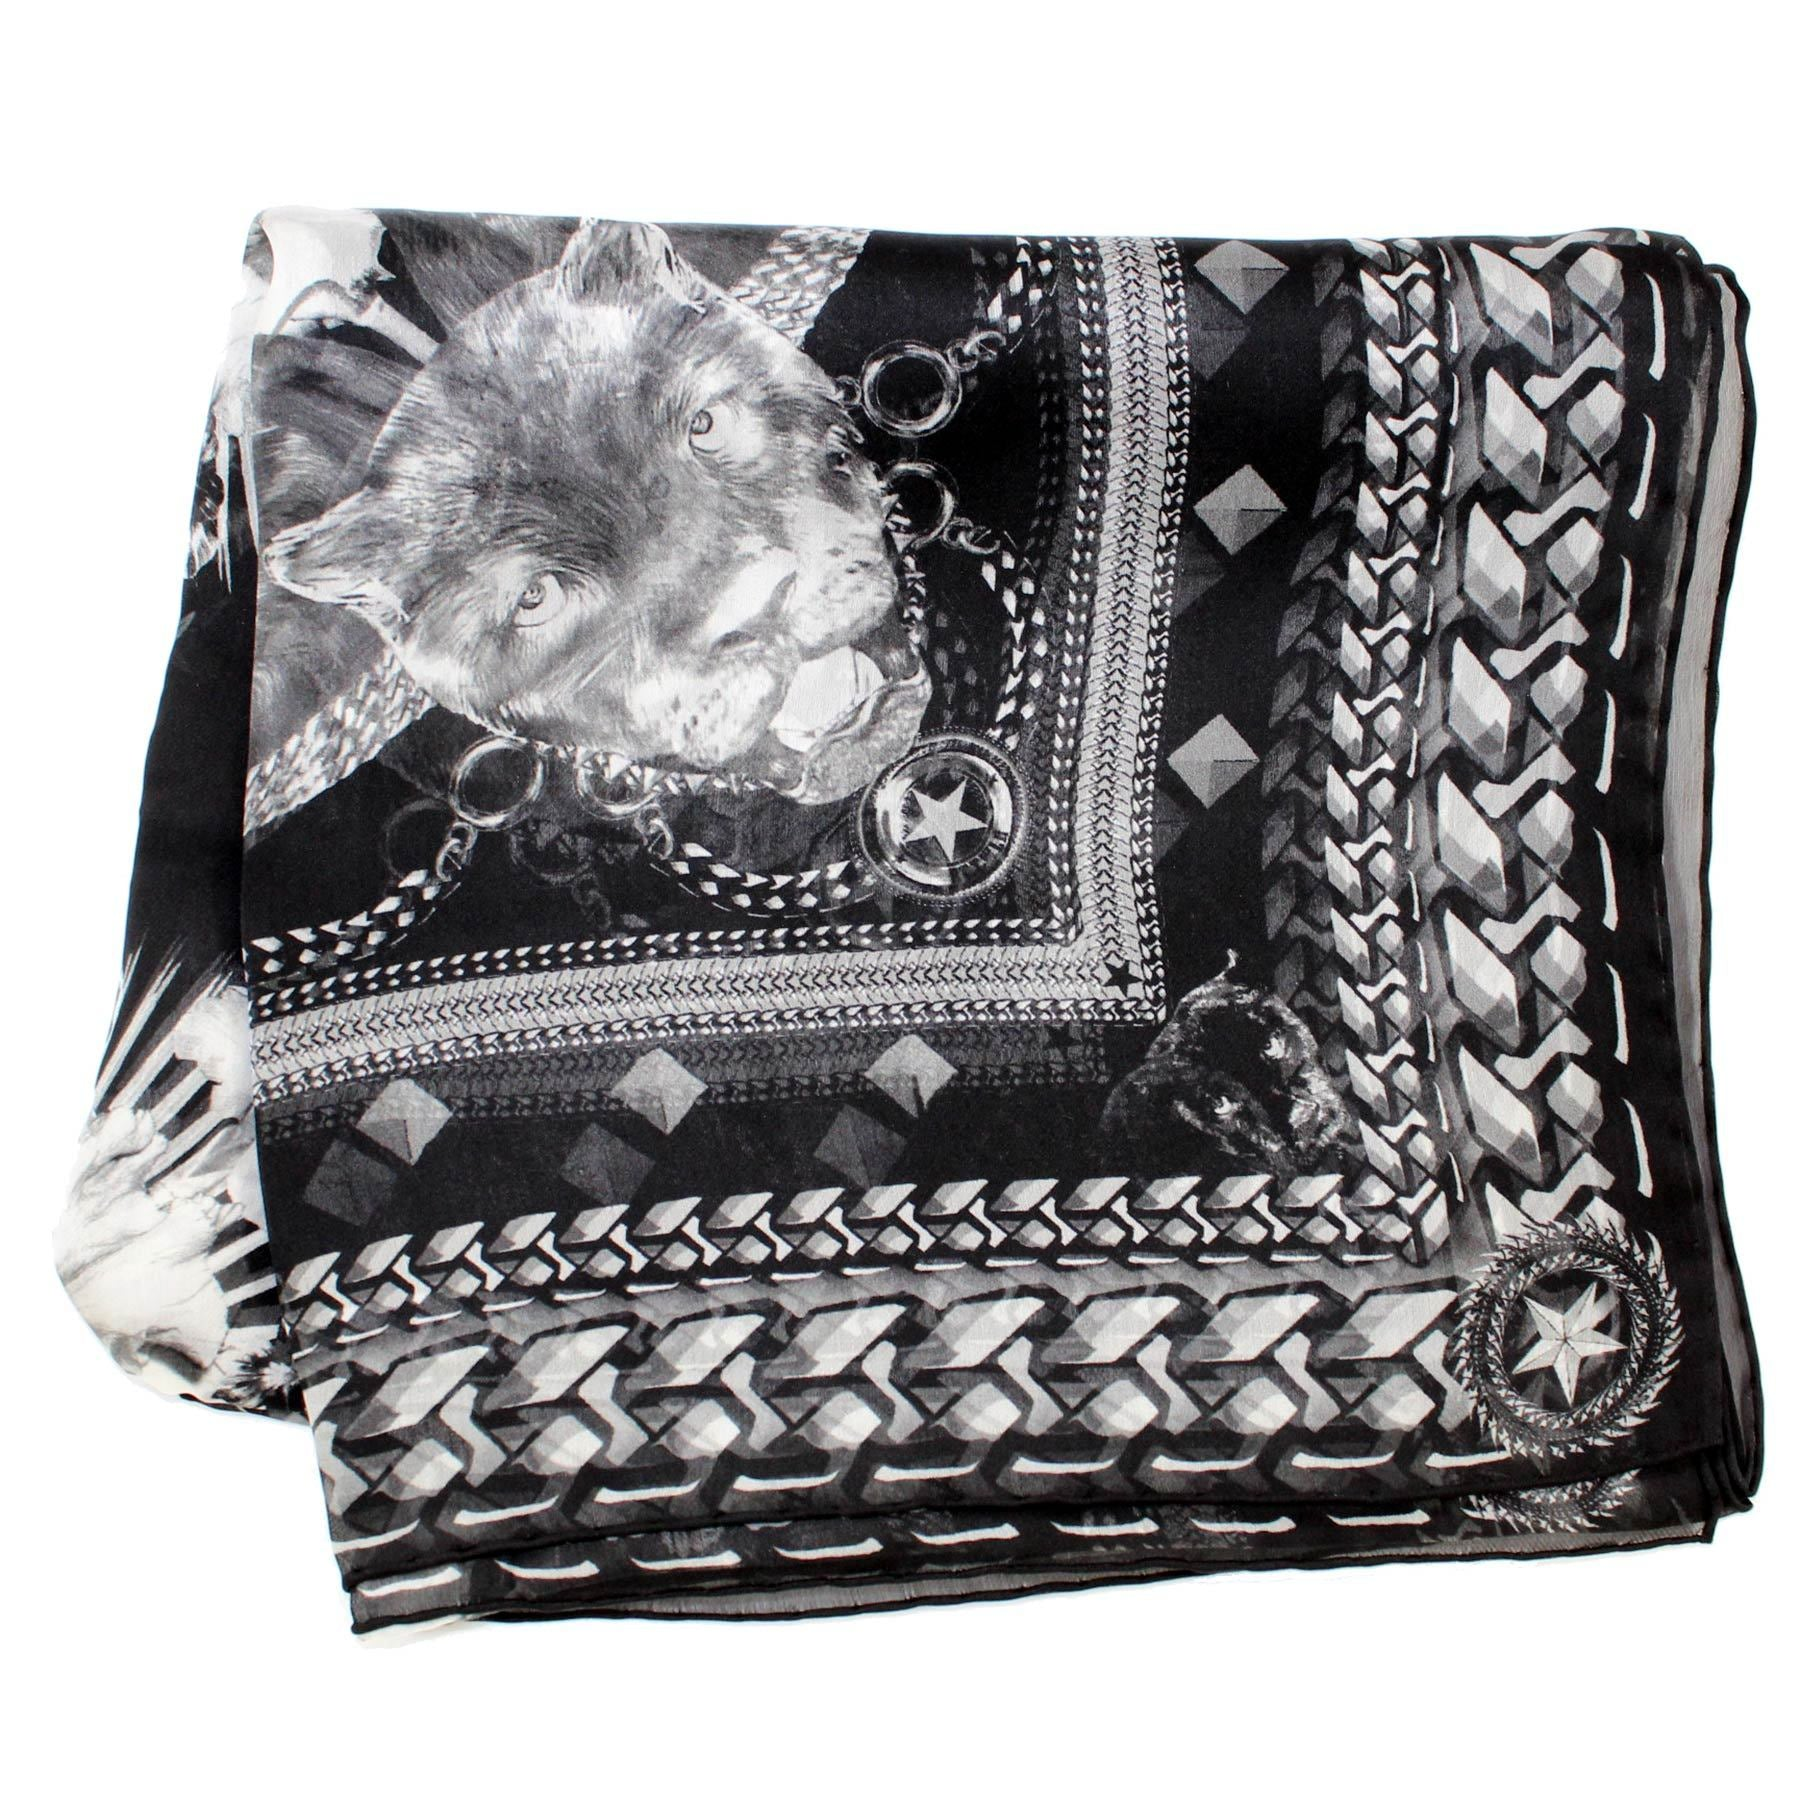 Givenchy Scarf Black Gray Panther